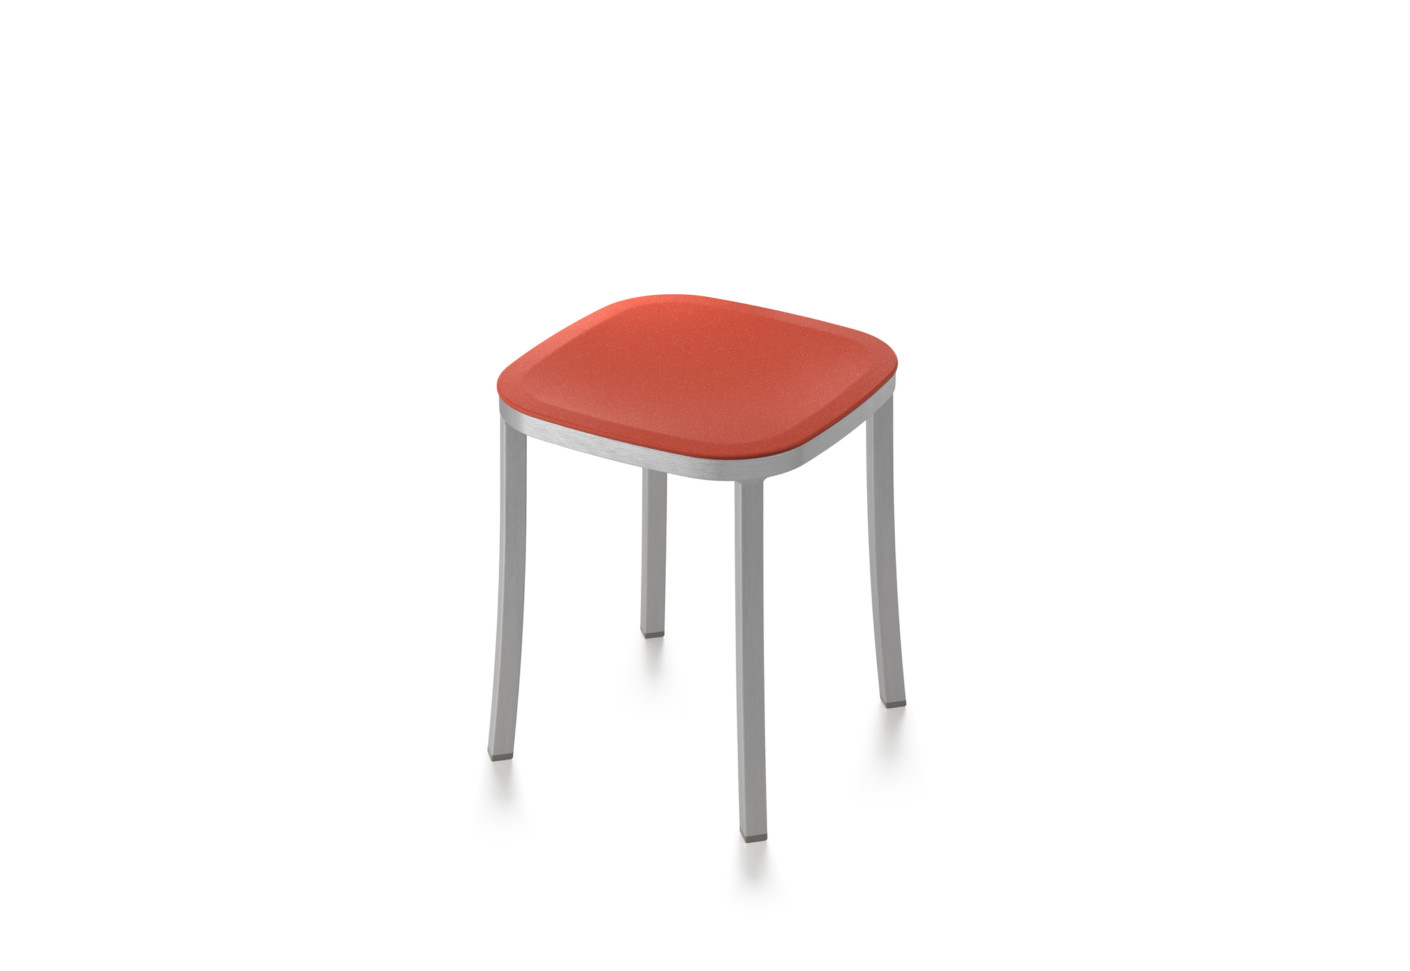 1 Inch Stool By Emeco Stylepark